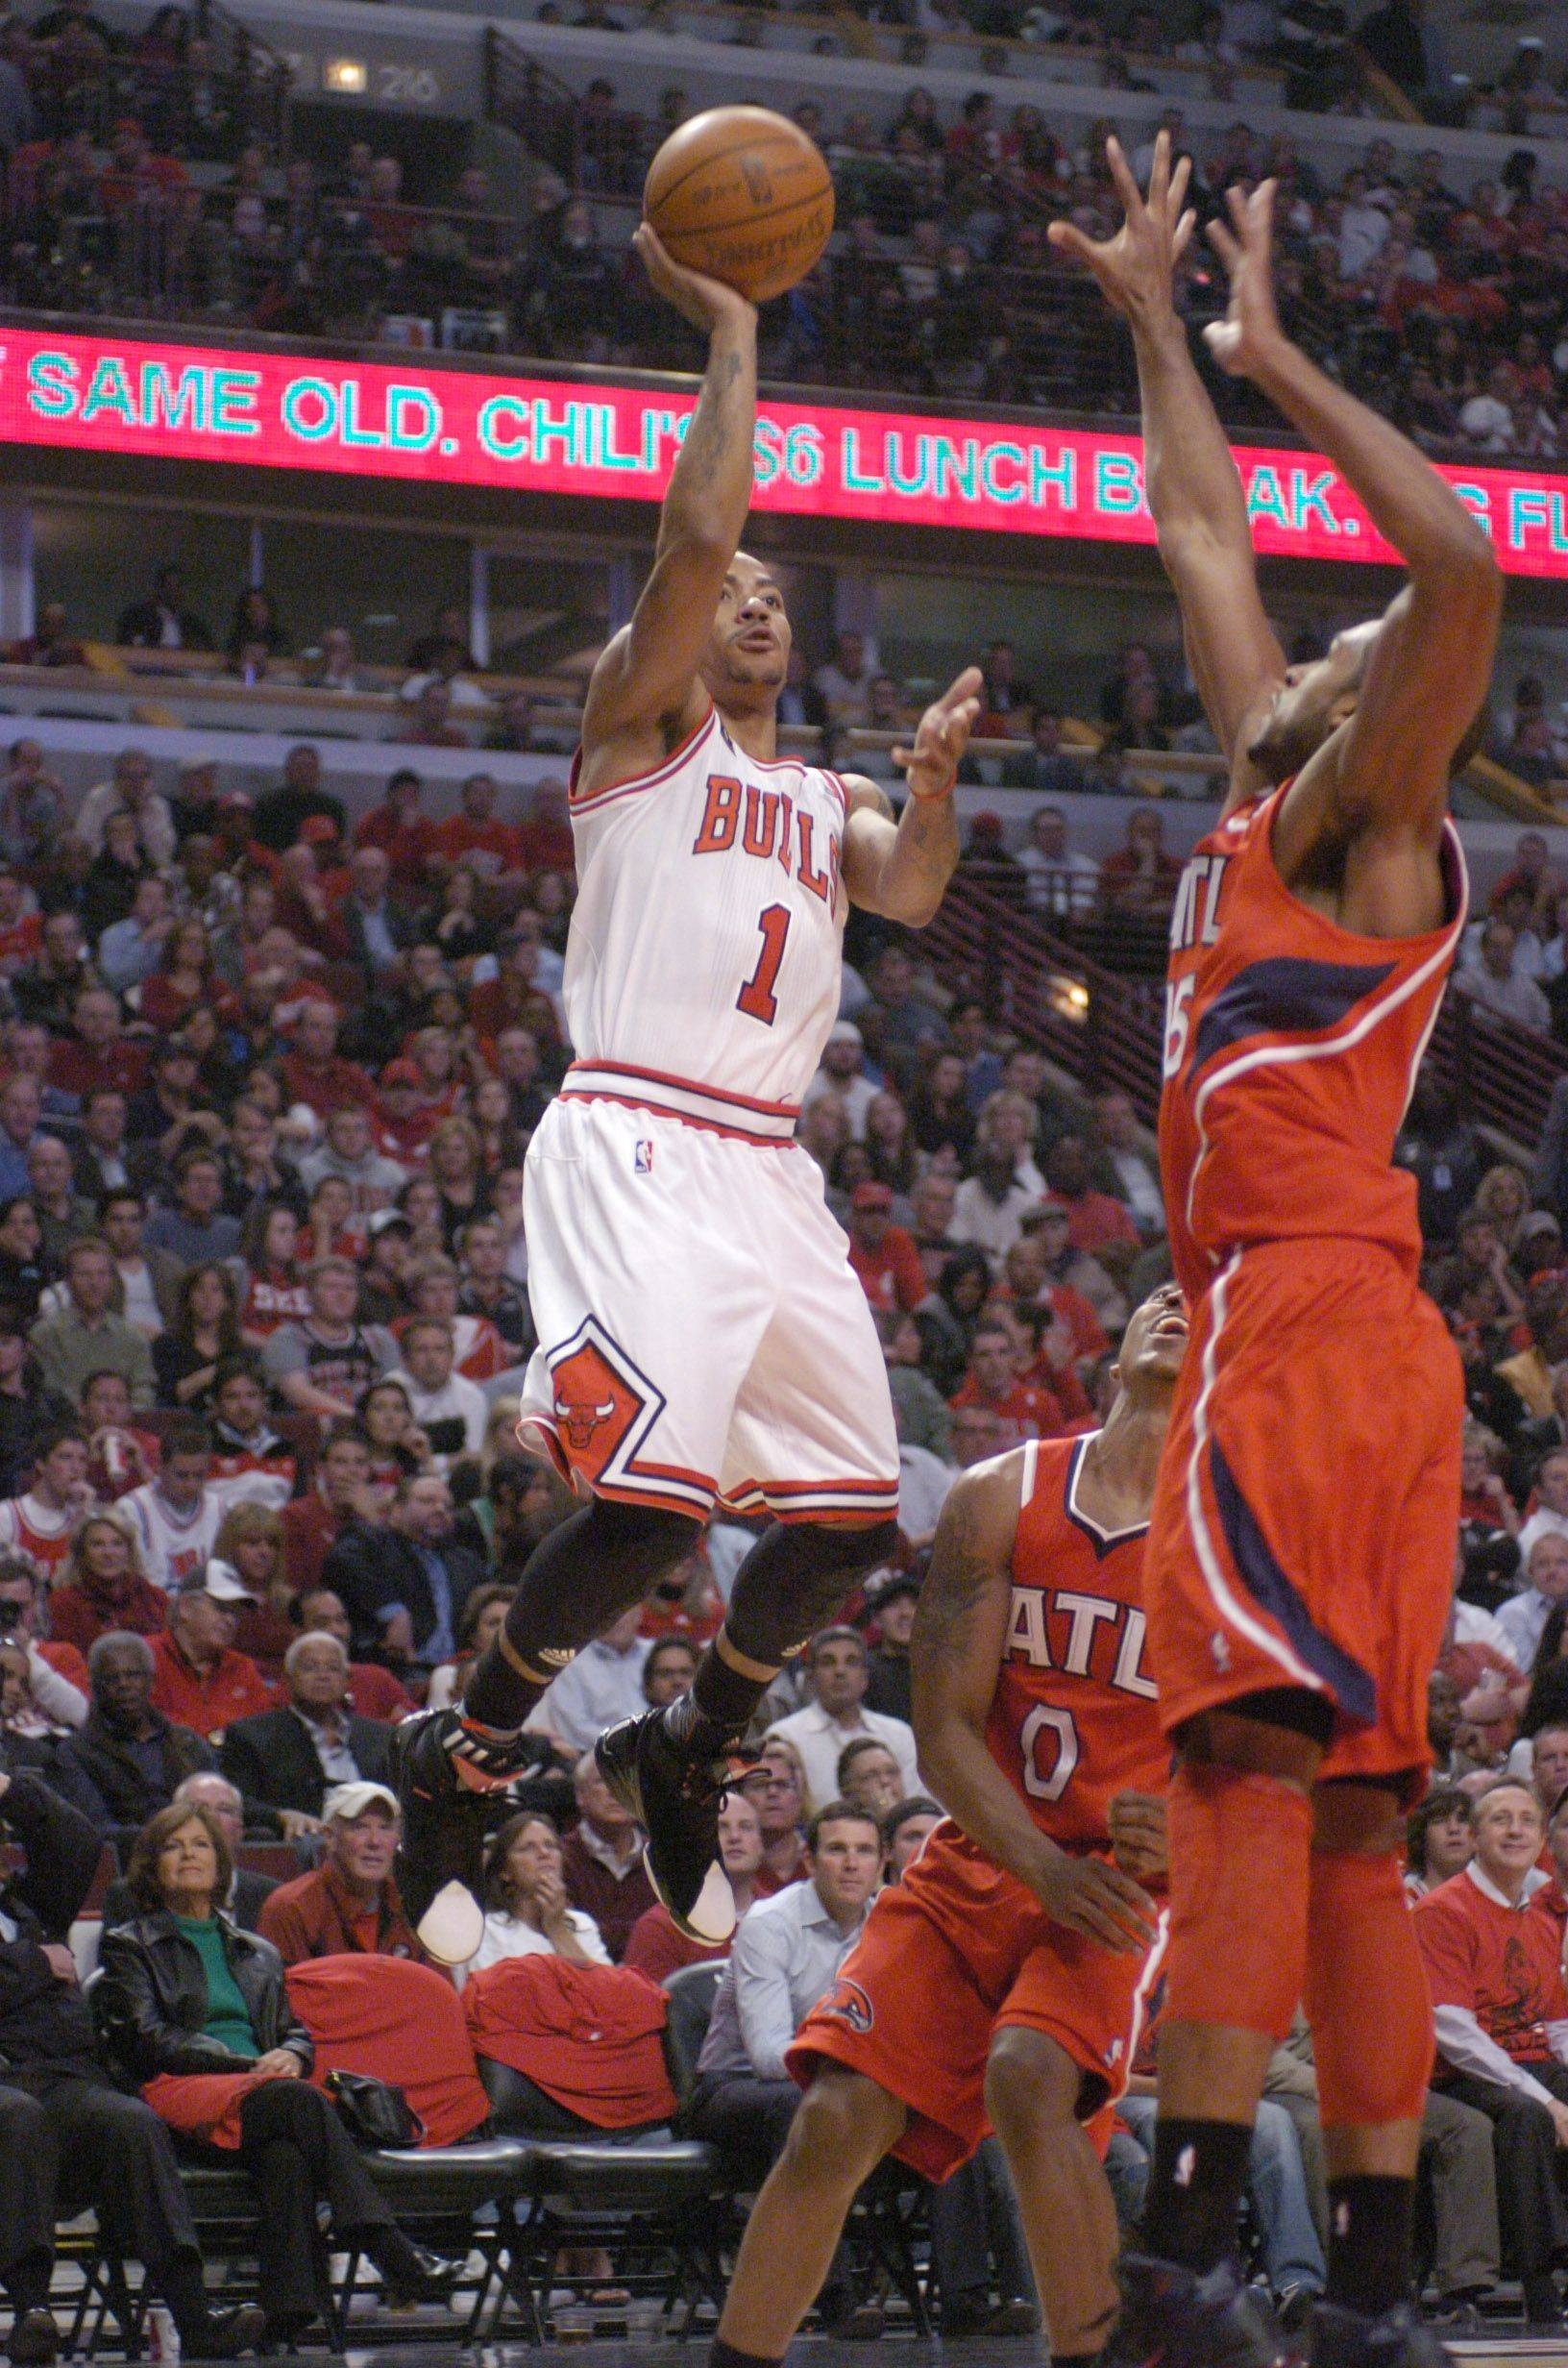 Derrick Rose shoots a one-handed jumper against Al Horford of the Hawks Wednesday.